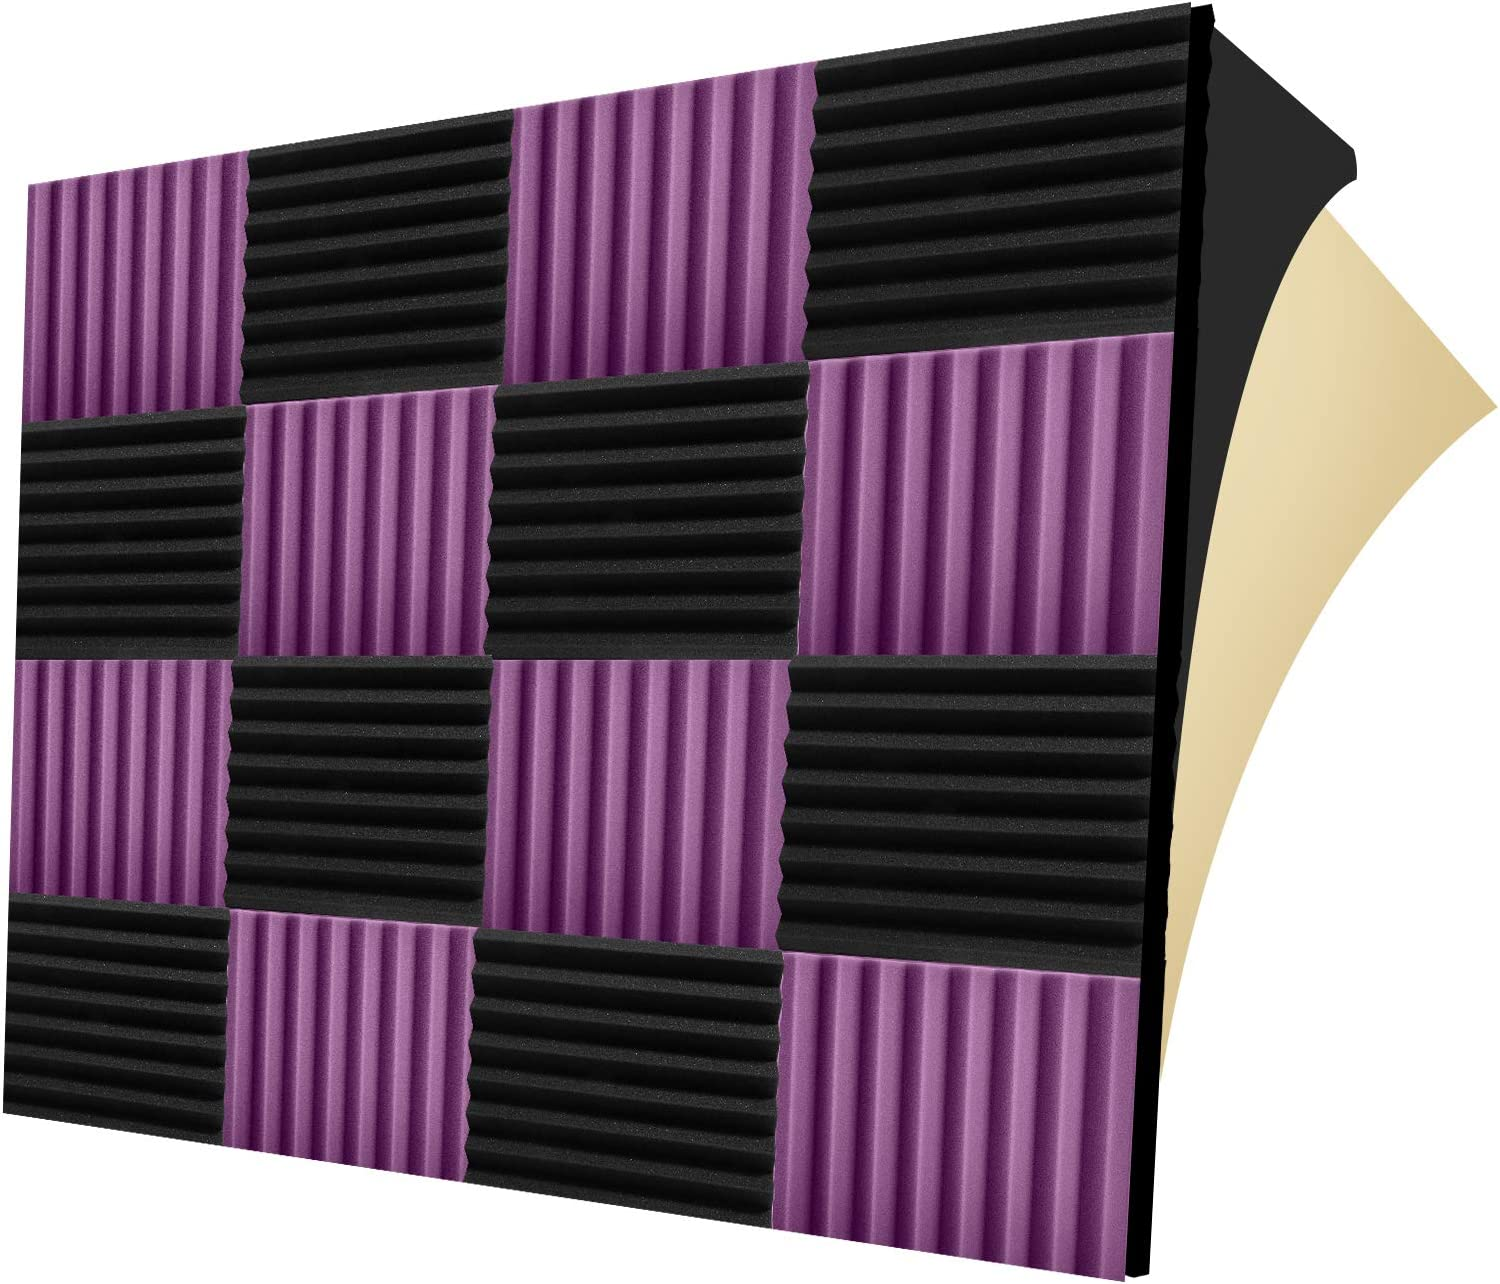 """12 Pack Self-adhesive Sound Proof Foam Panels, 1.5"""" X 12"""" X 12"""", Acoustic Foam Panels with High Density, Soundproof Foam Panels for Decreasing Noise and Echoes, Studio Foam for Indoor (Black+Purple)"""